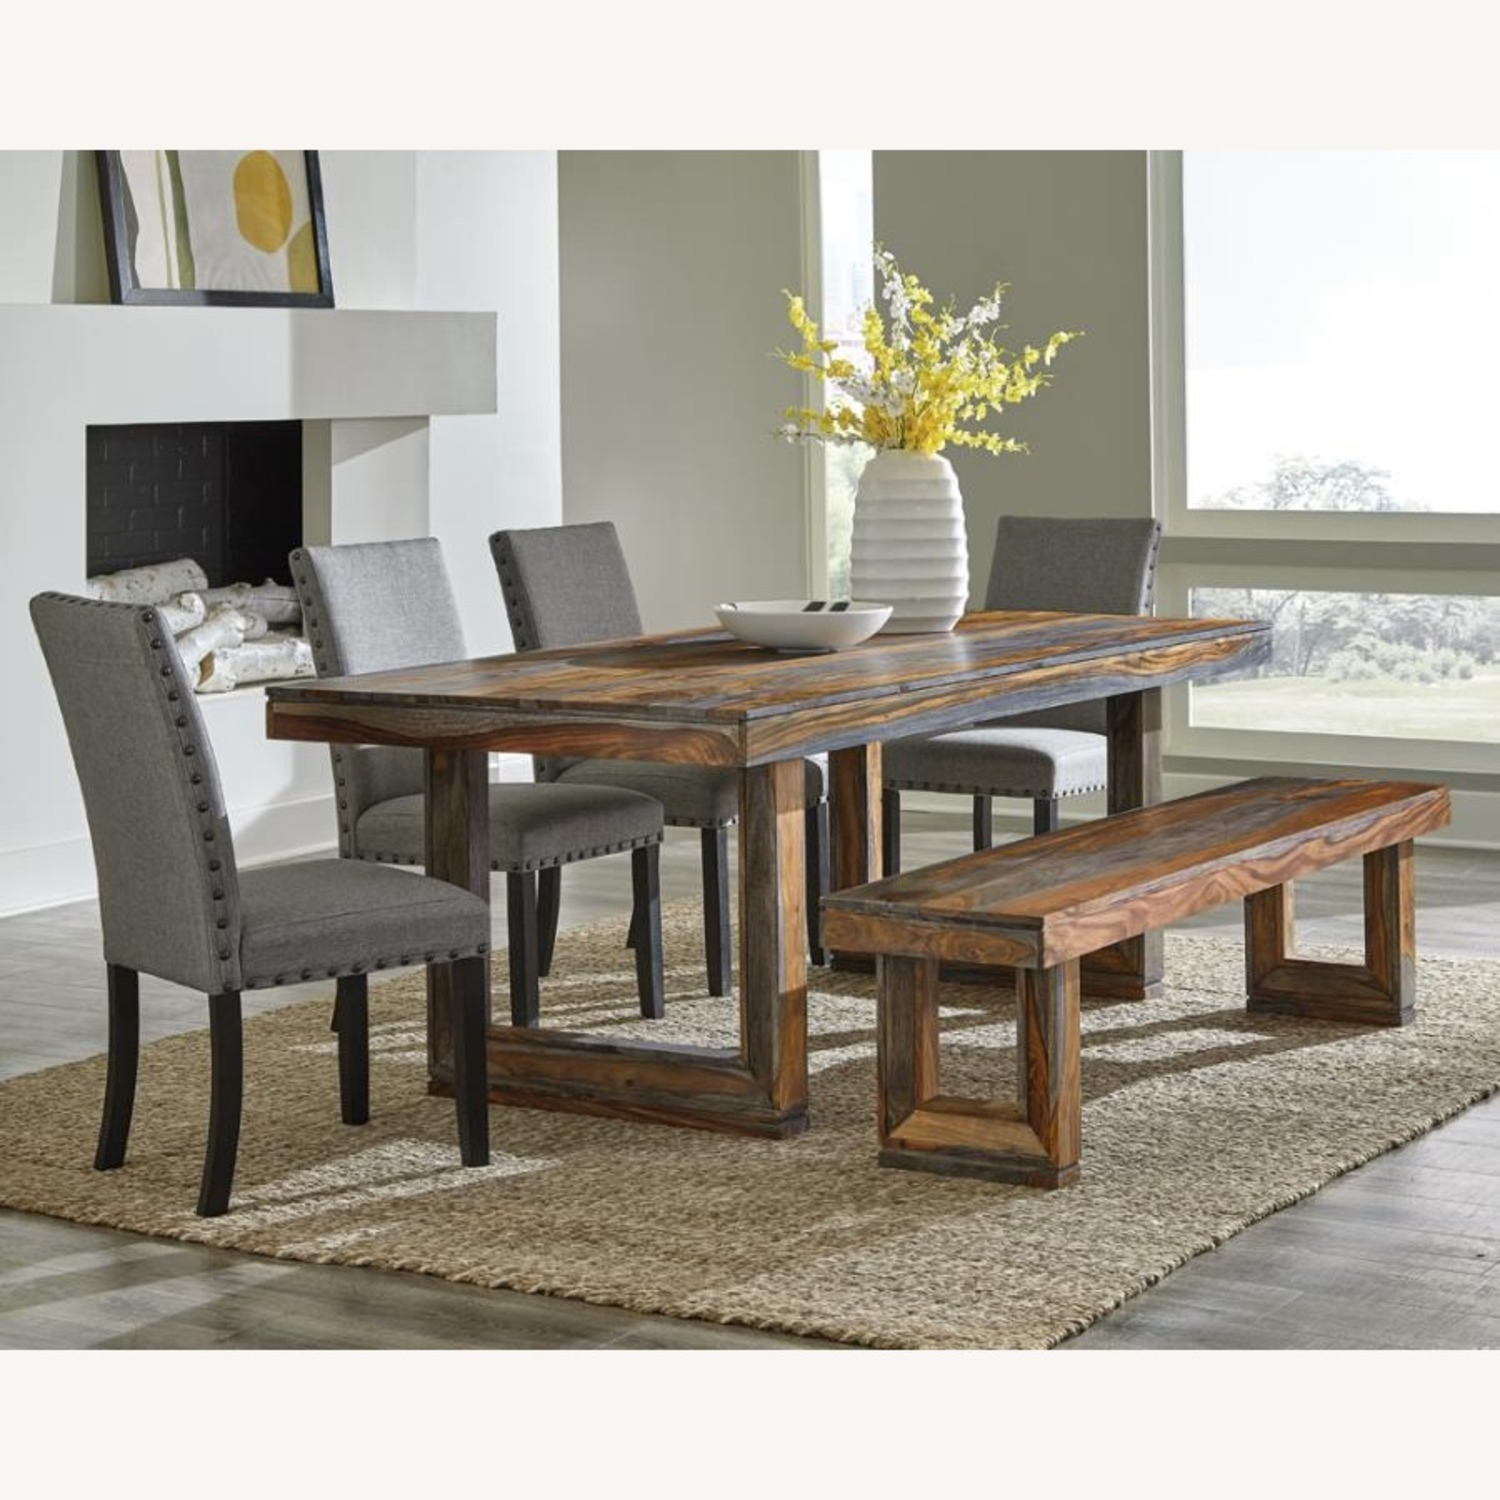 Rustic Dining Table In Grey Finish - image-2